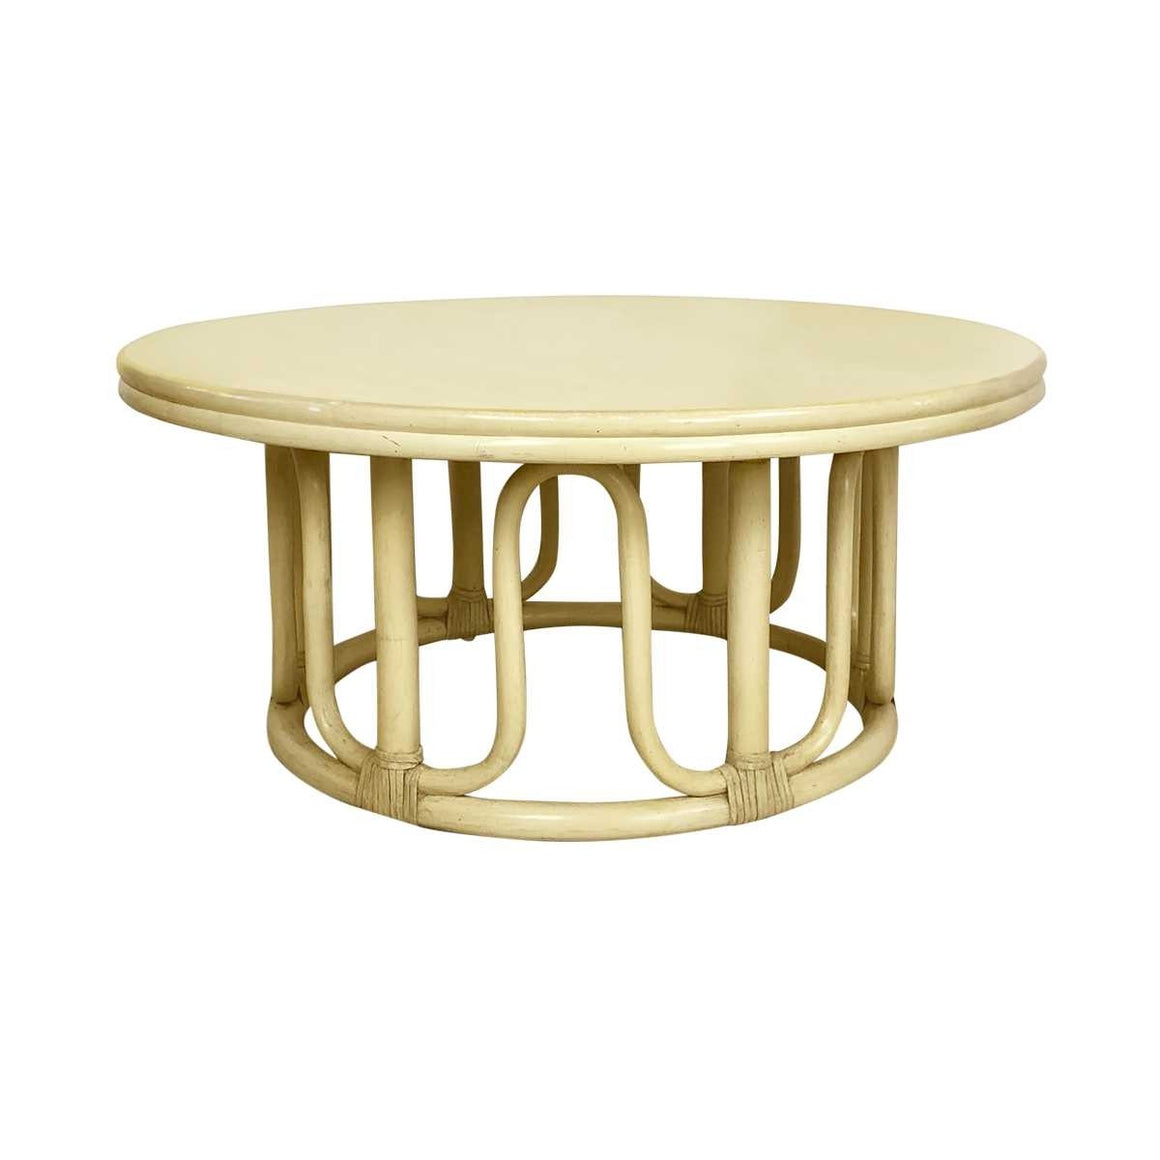 McGuire Furniture Company Round Cocktail Table